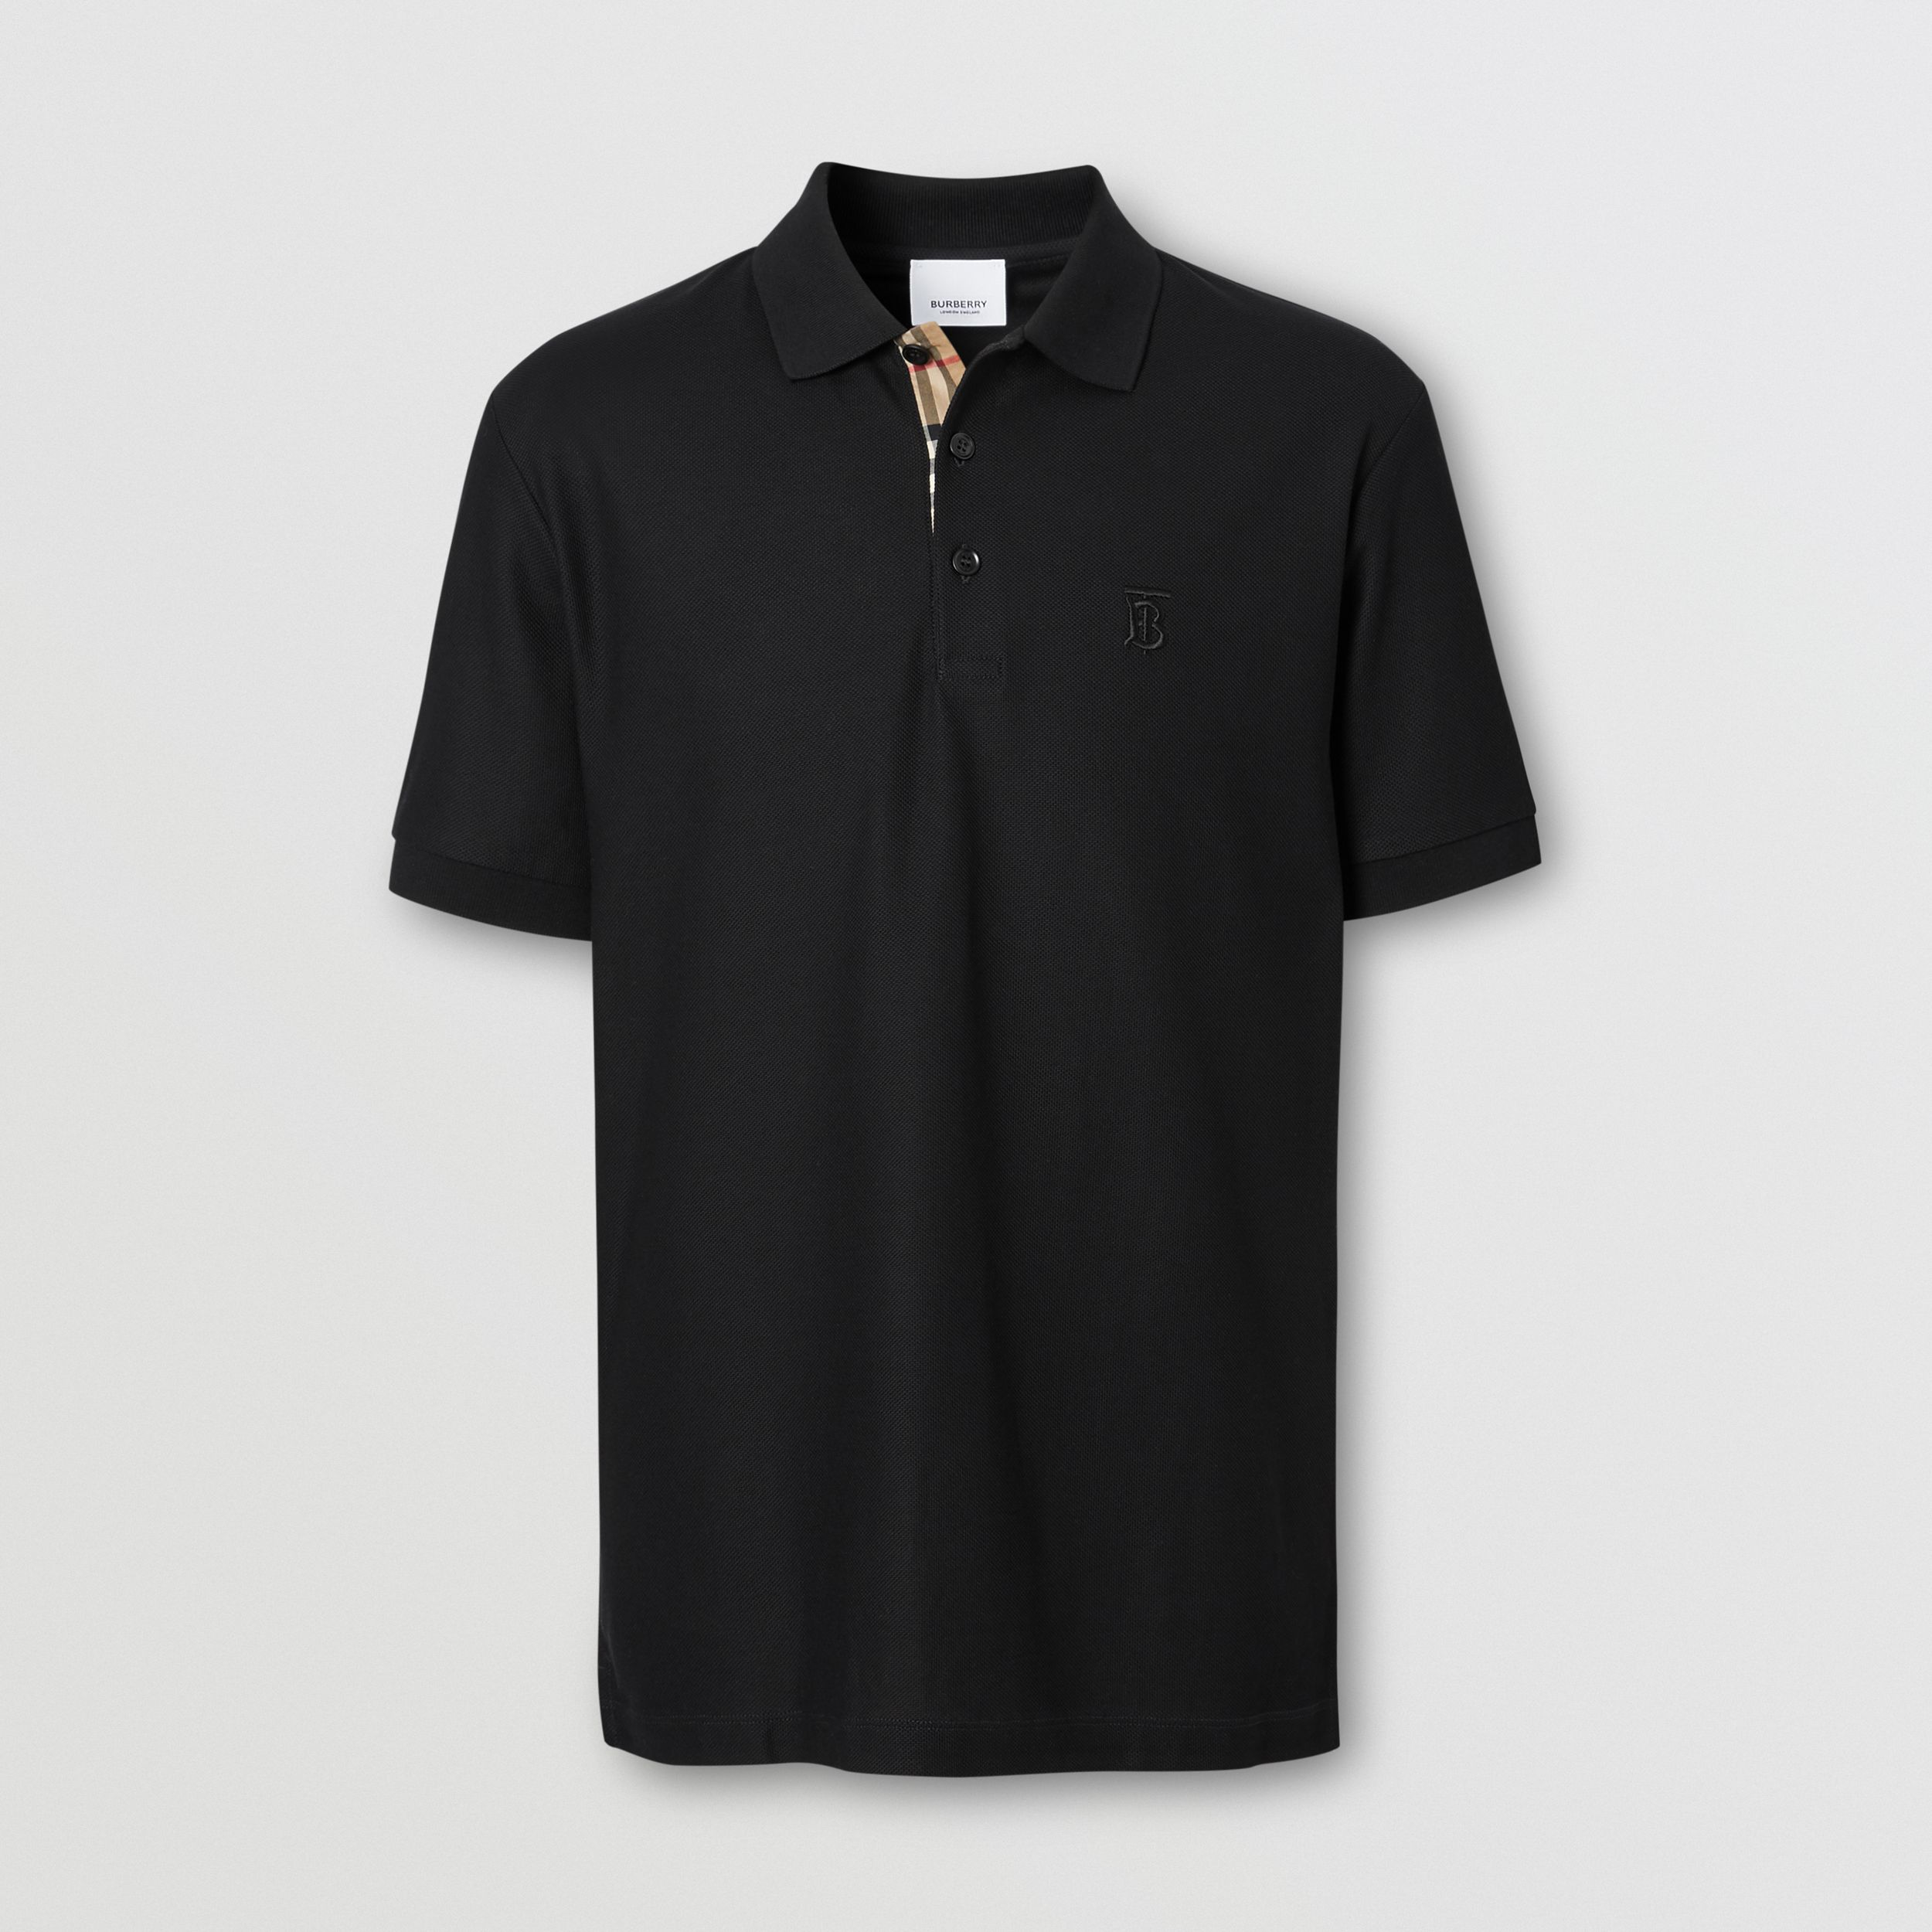 Monogram Motif Cotton Piqué Polo Shirt in Black - Men | Burberry - 4